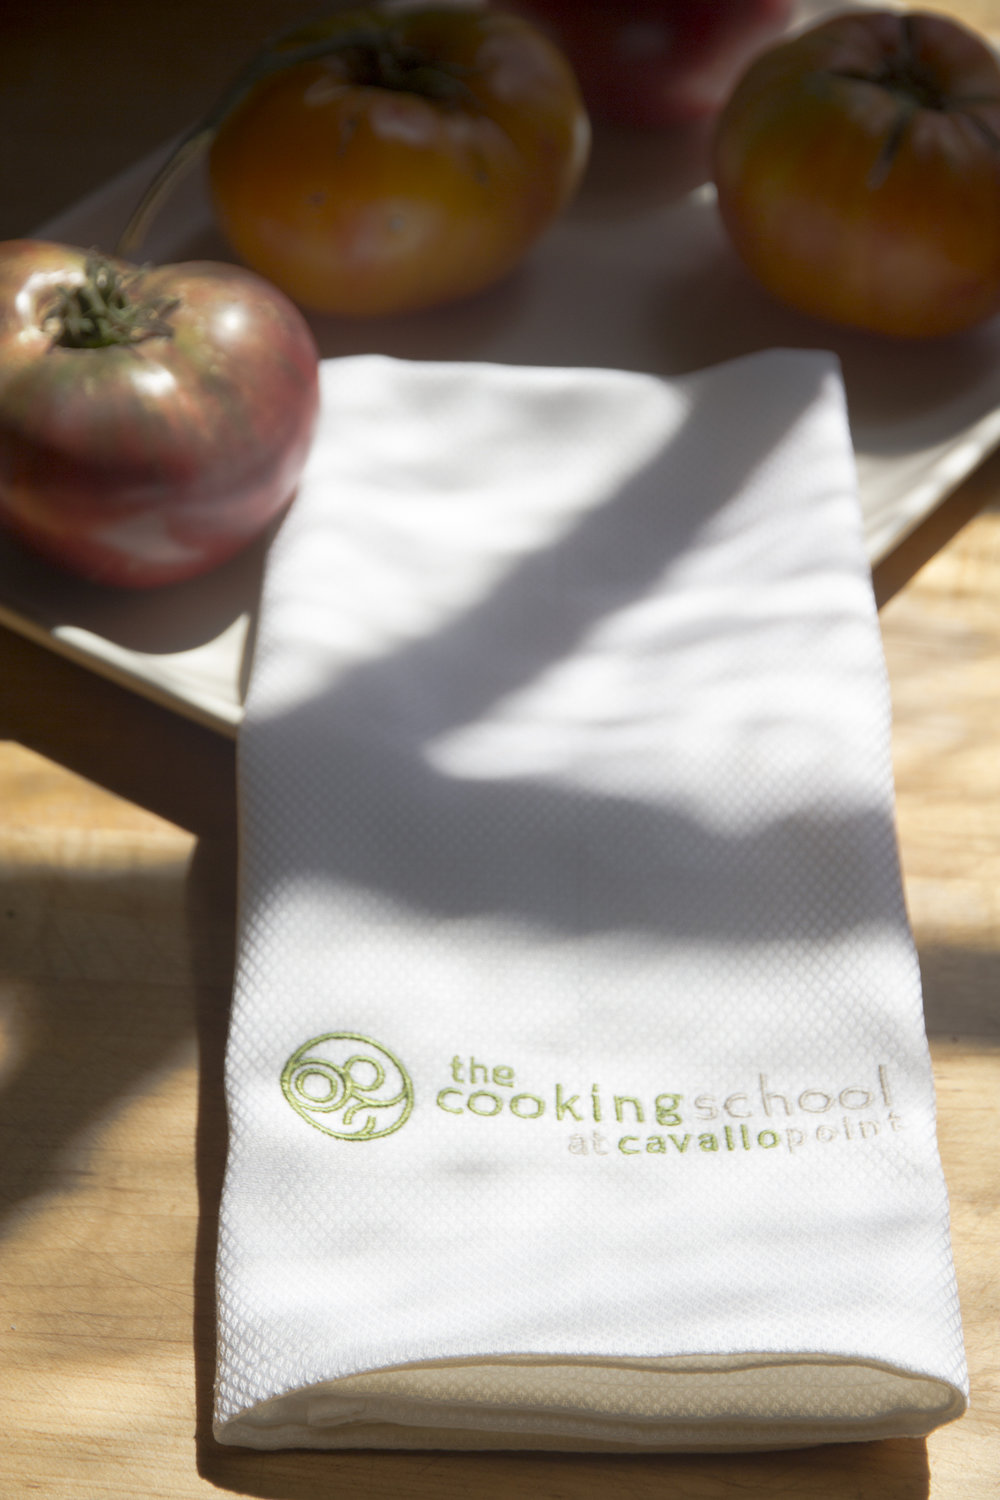 You may also like: - Cavallo Point Cooking School Tea Towel